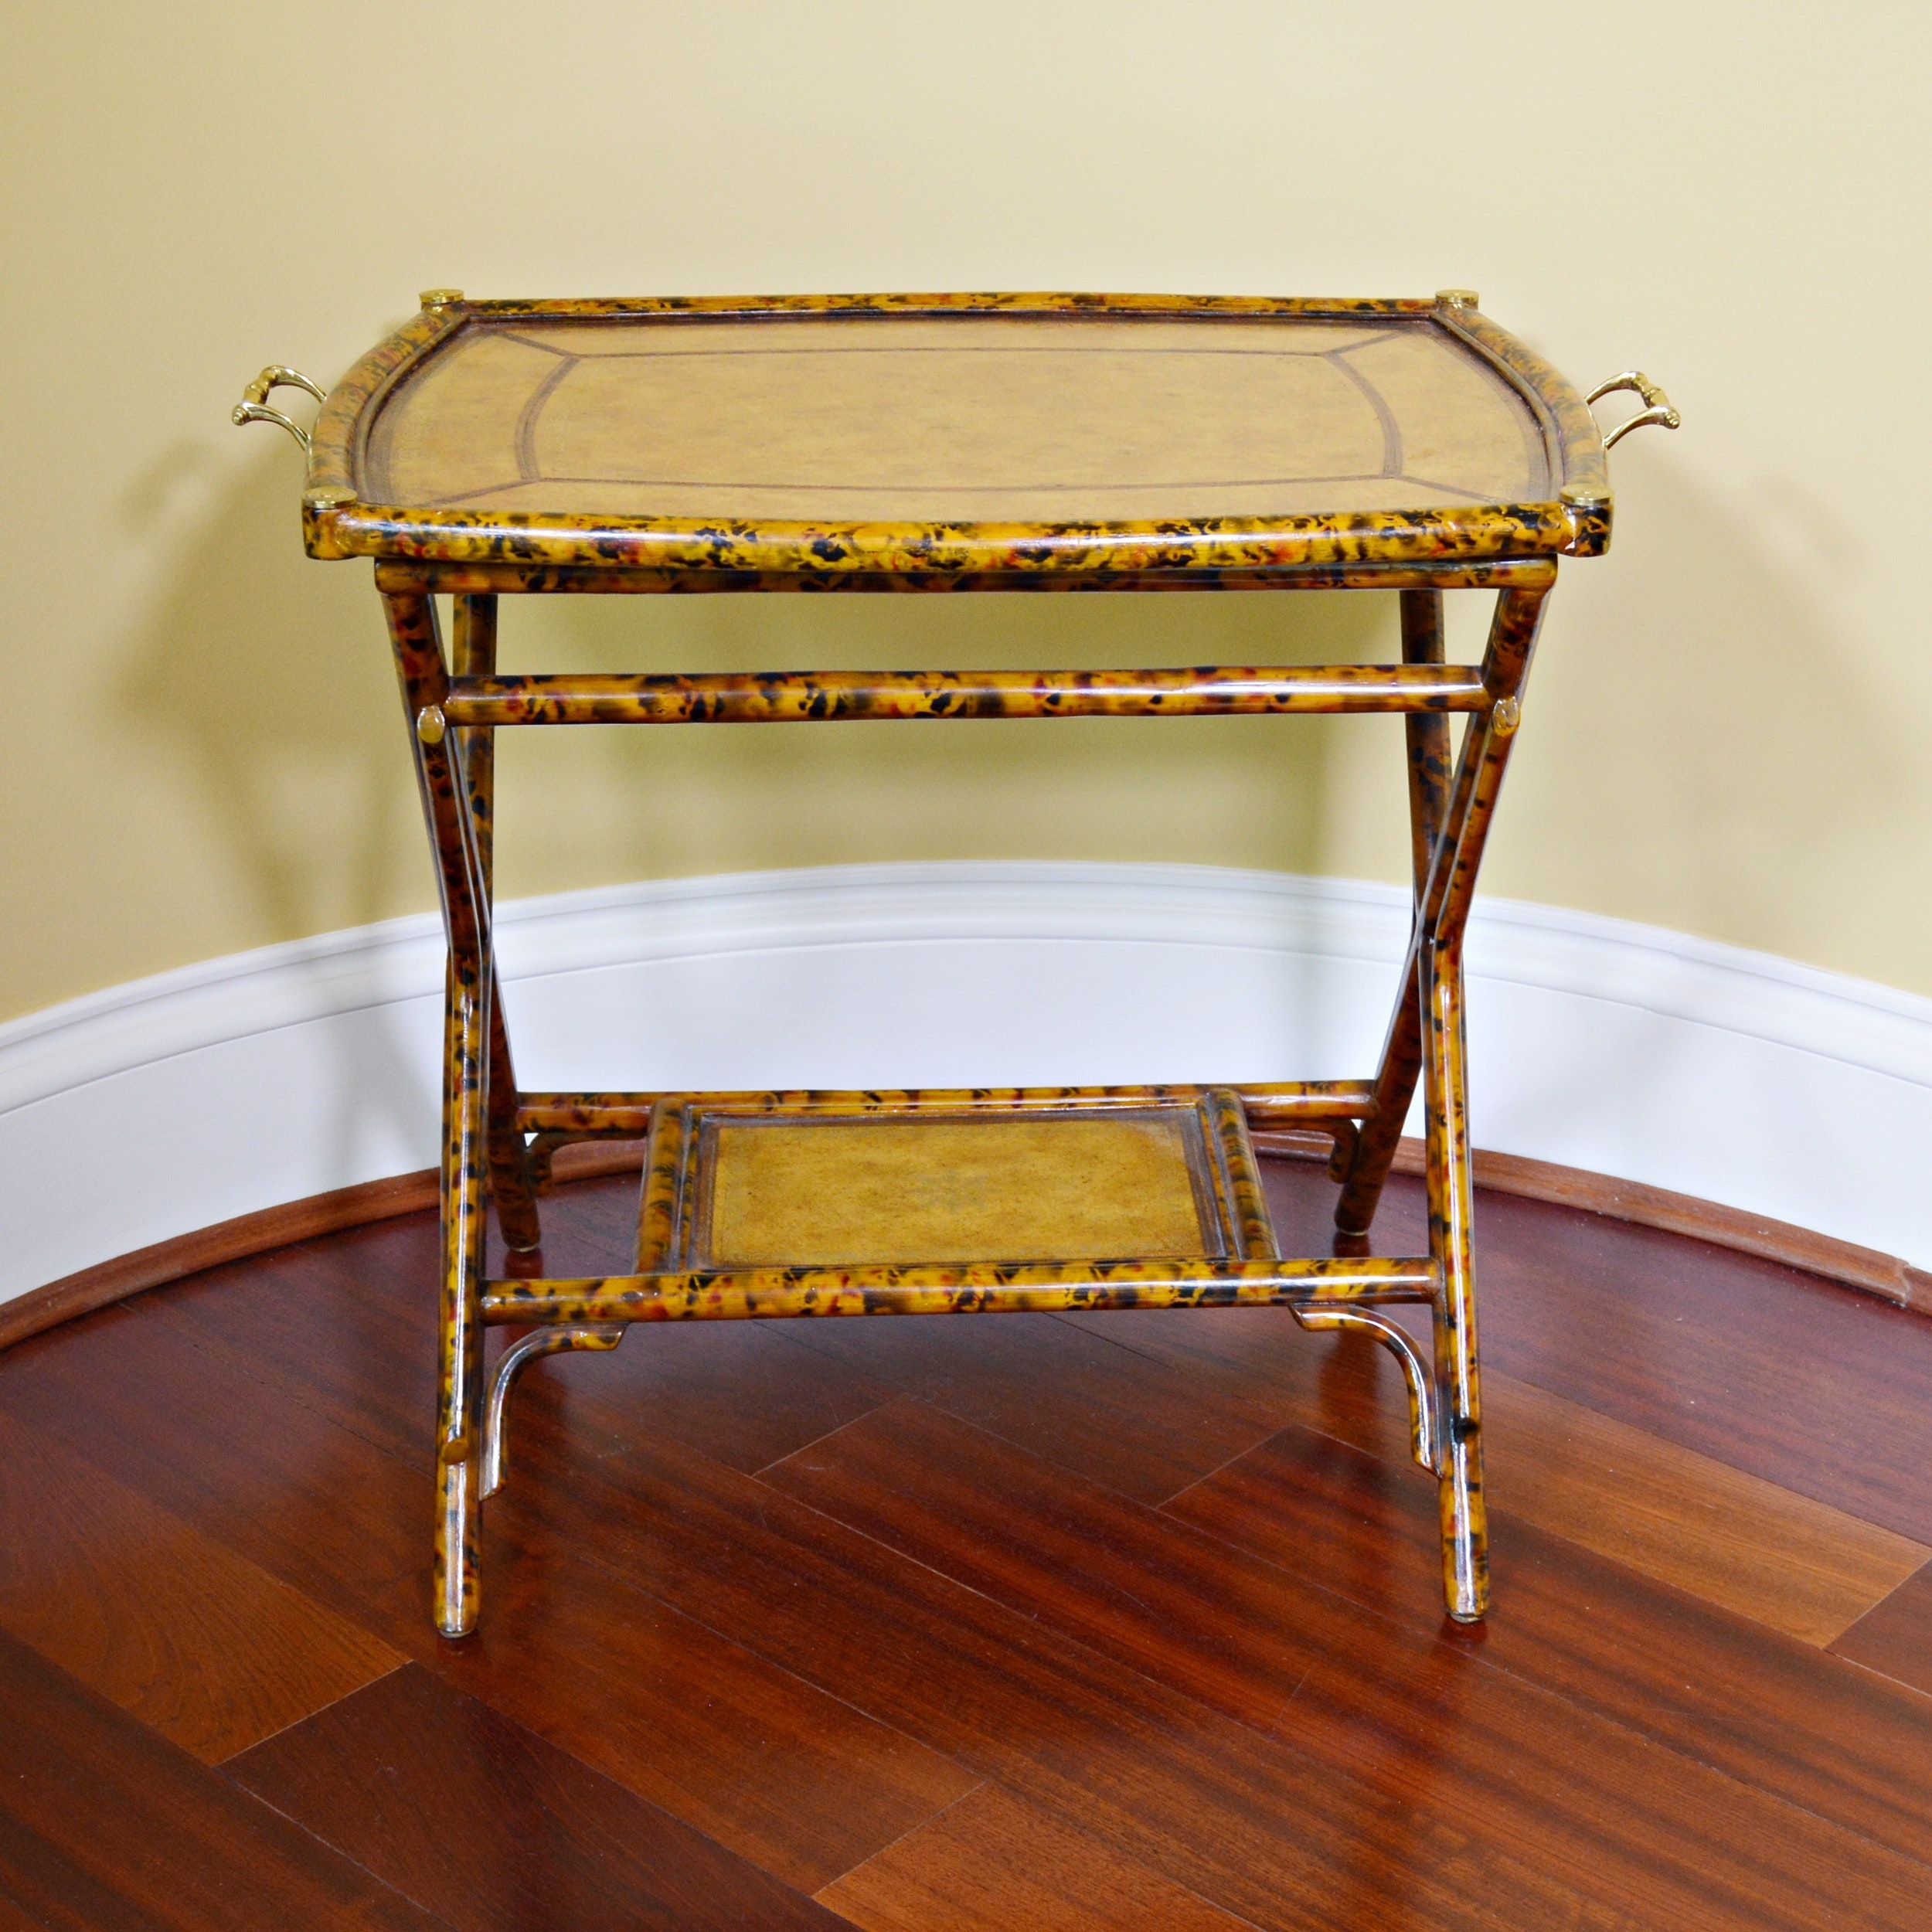 Maitland-Smith Bamboo and Leather Tray Table